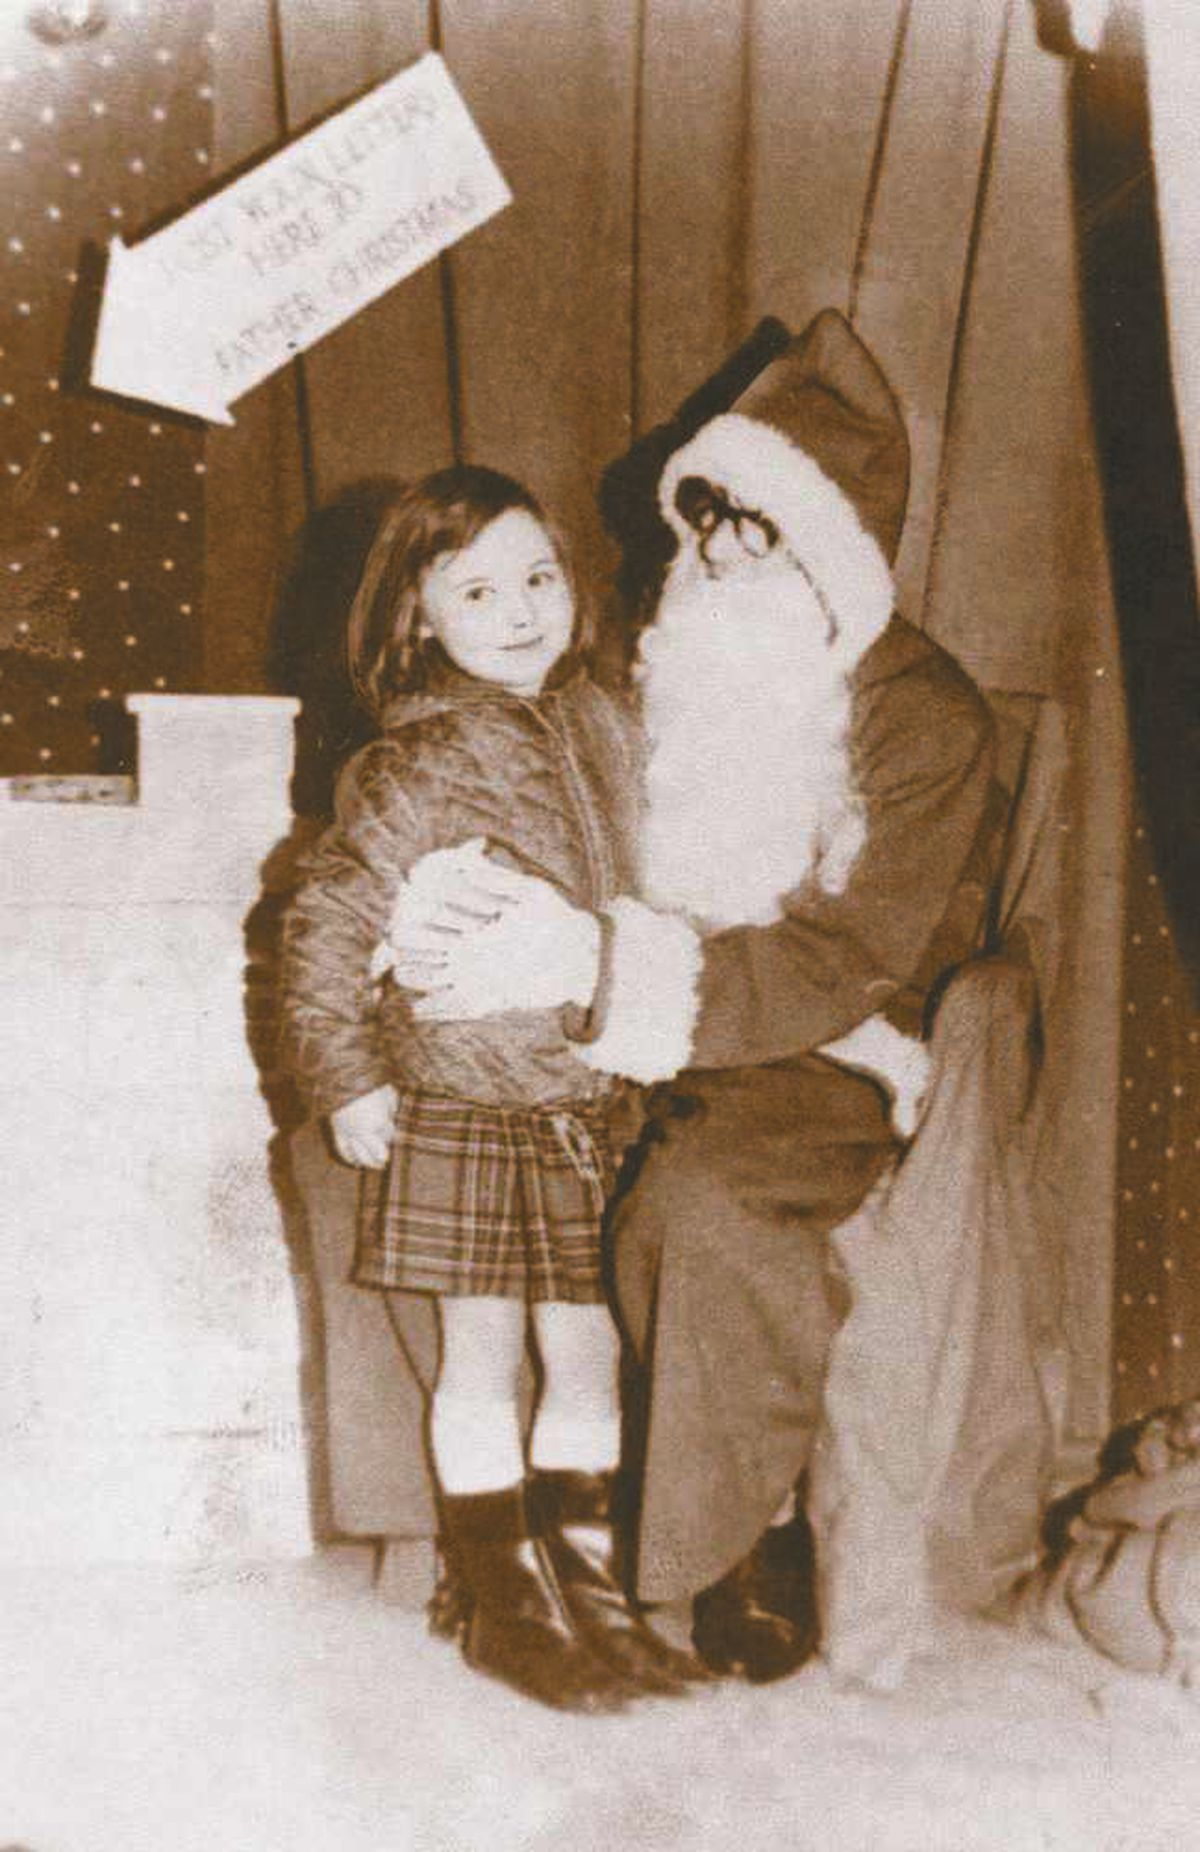 Christine Darby with Santa Claus in 1966